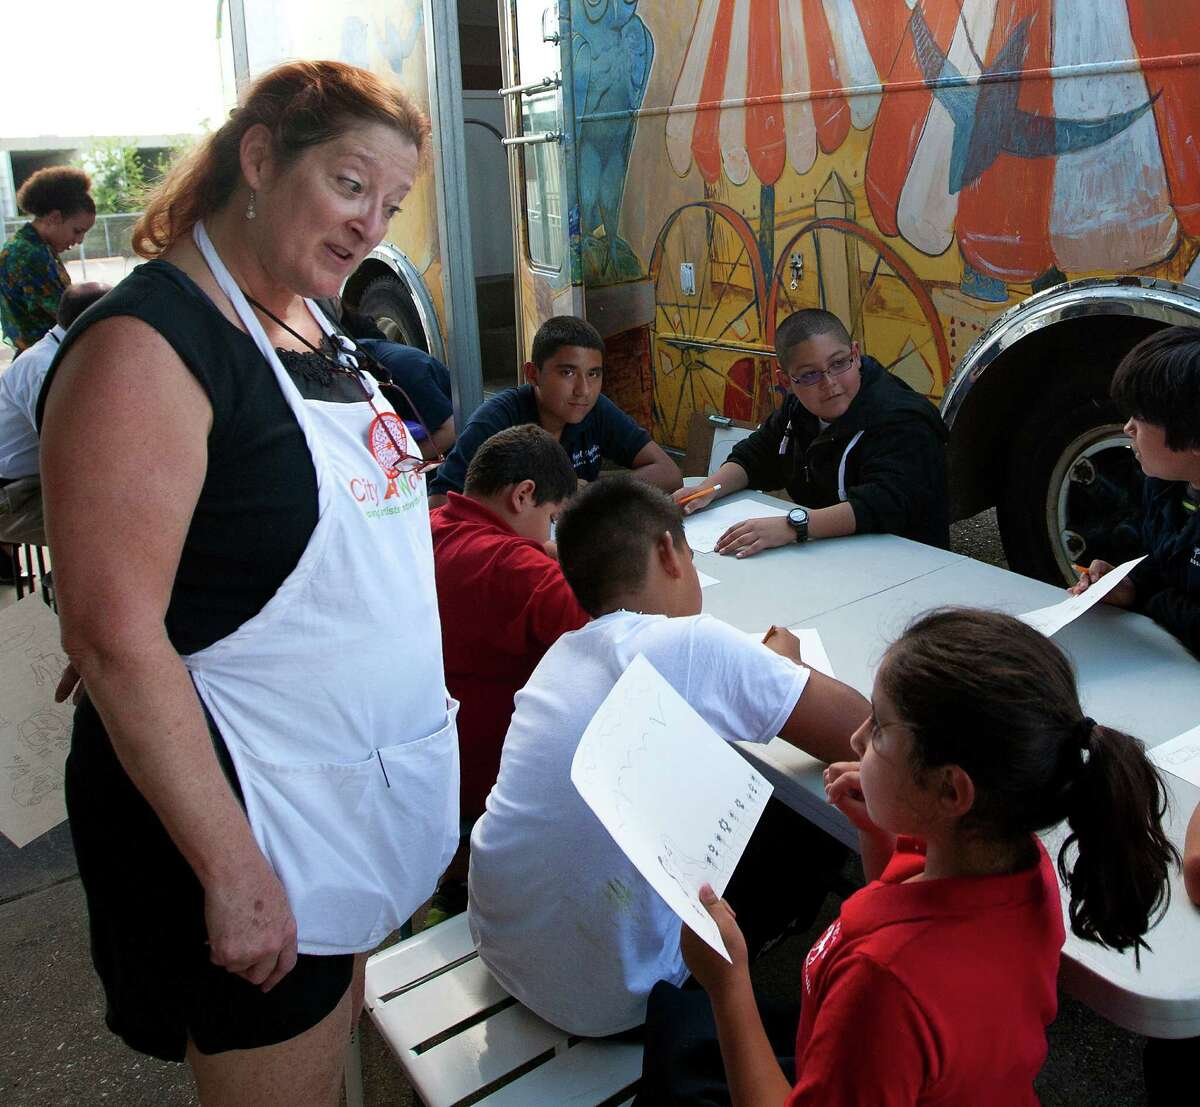 Art Instructor Susan Wingfield, left, talks to Natalie Villareal, 8, outside the Orange Show Art Bus as she teaches art at Cage Elementary, Wednesday, Oct. 9, 2013, in Houston. A grant allowed the funding to convert a 1964 bus into a rolling classroom meant to offer art programs at schools where such have been curtailed or don't exist.